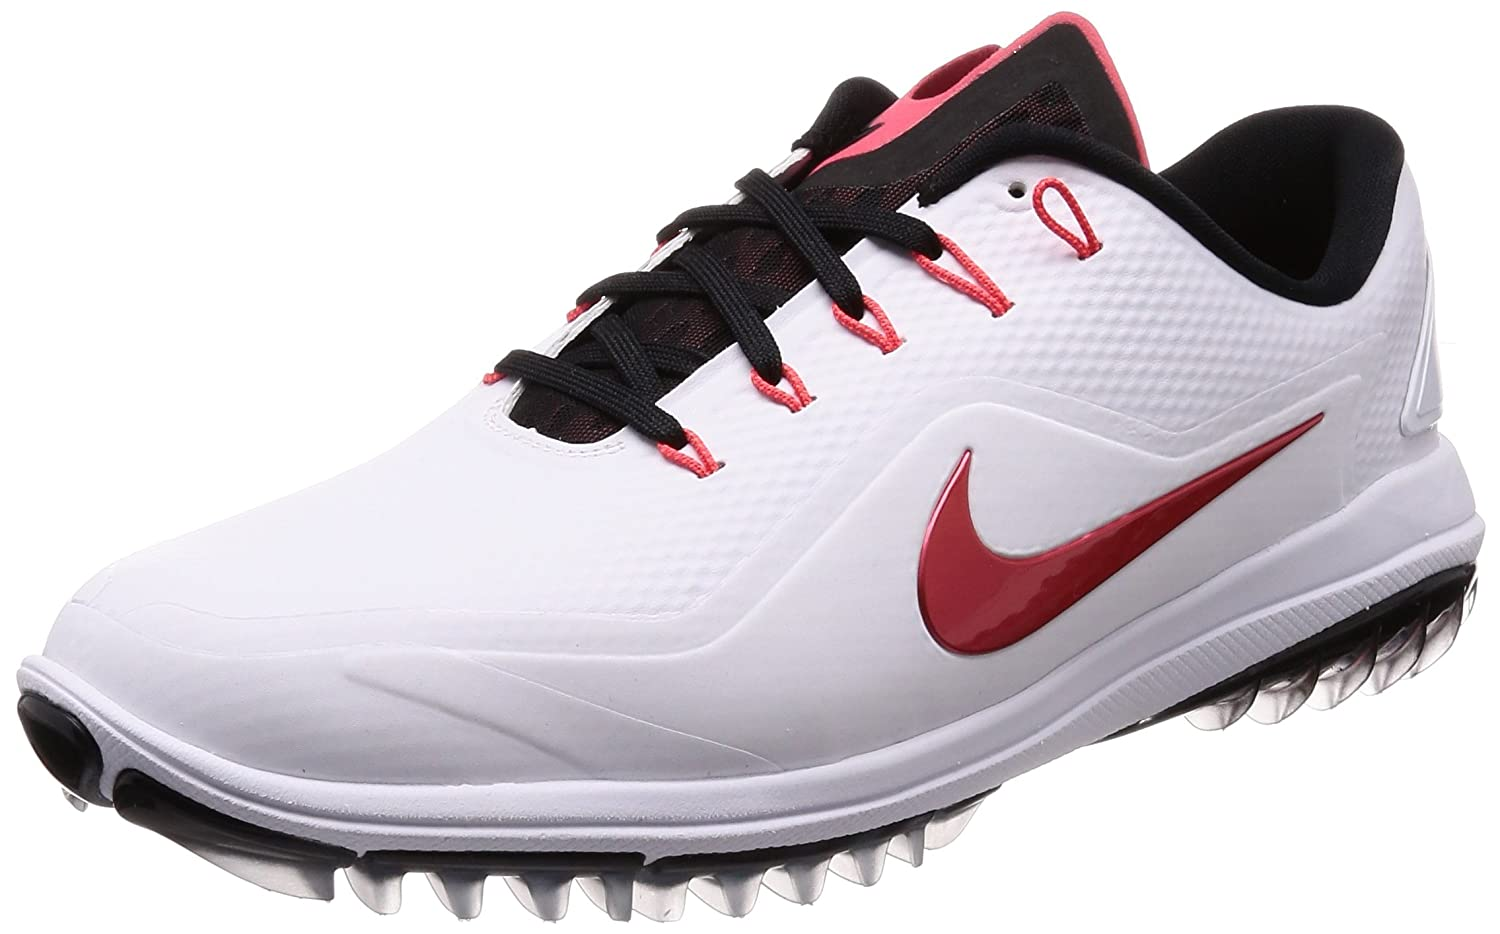 32d7c703ee214 Amazon.com  Nike Men s Lunar Control Vapor 2 Golf Shoes White Tropical Pink  Black 9.5 W  Sports   Outdoors